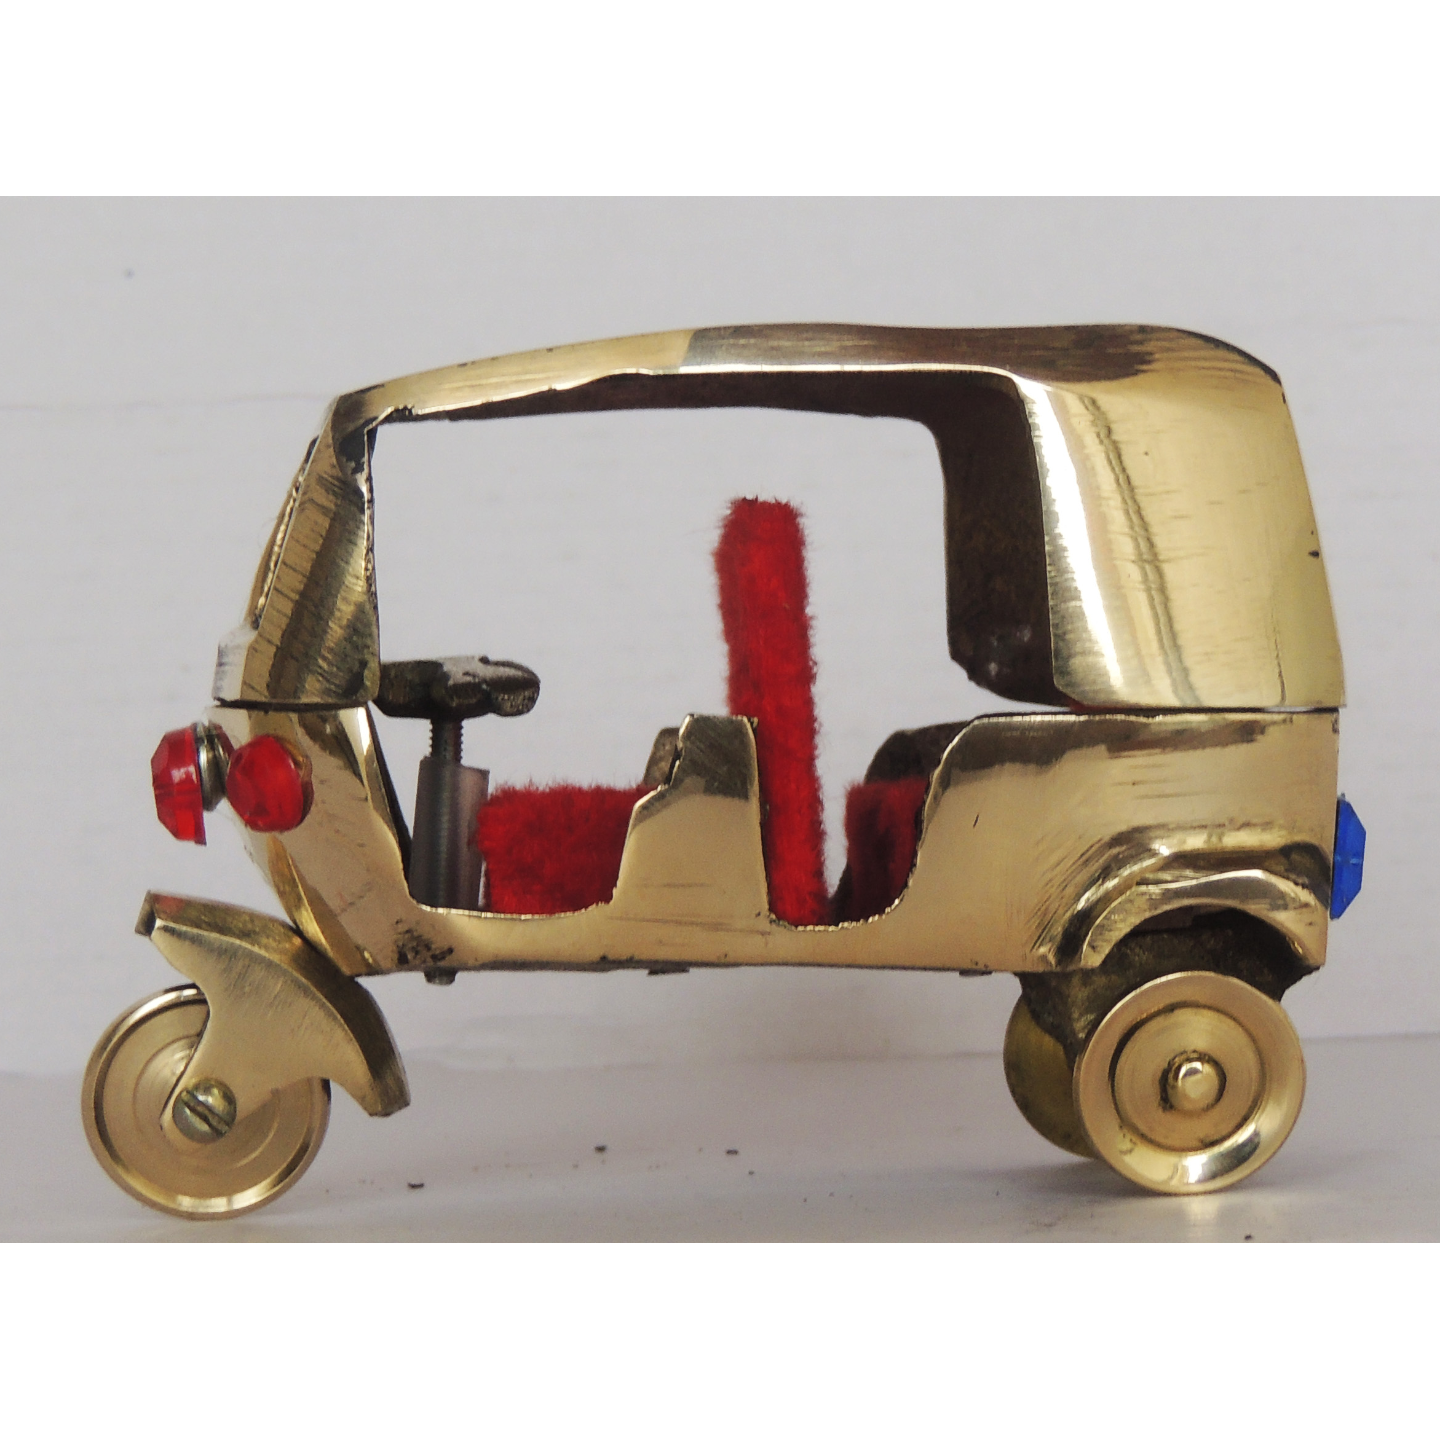 Brass Small Auto for Children Playing - 4x2.1x2.8 Inch  Z254 A